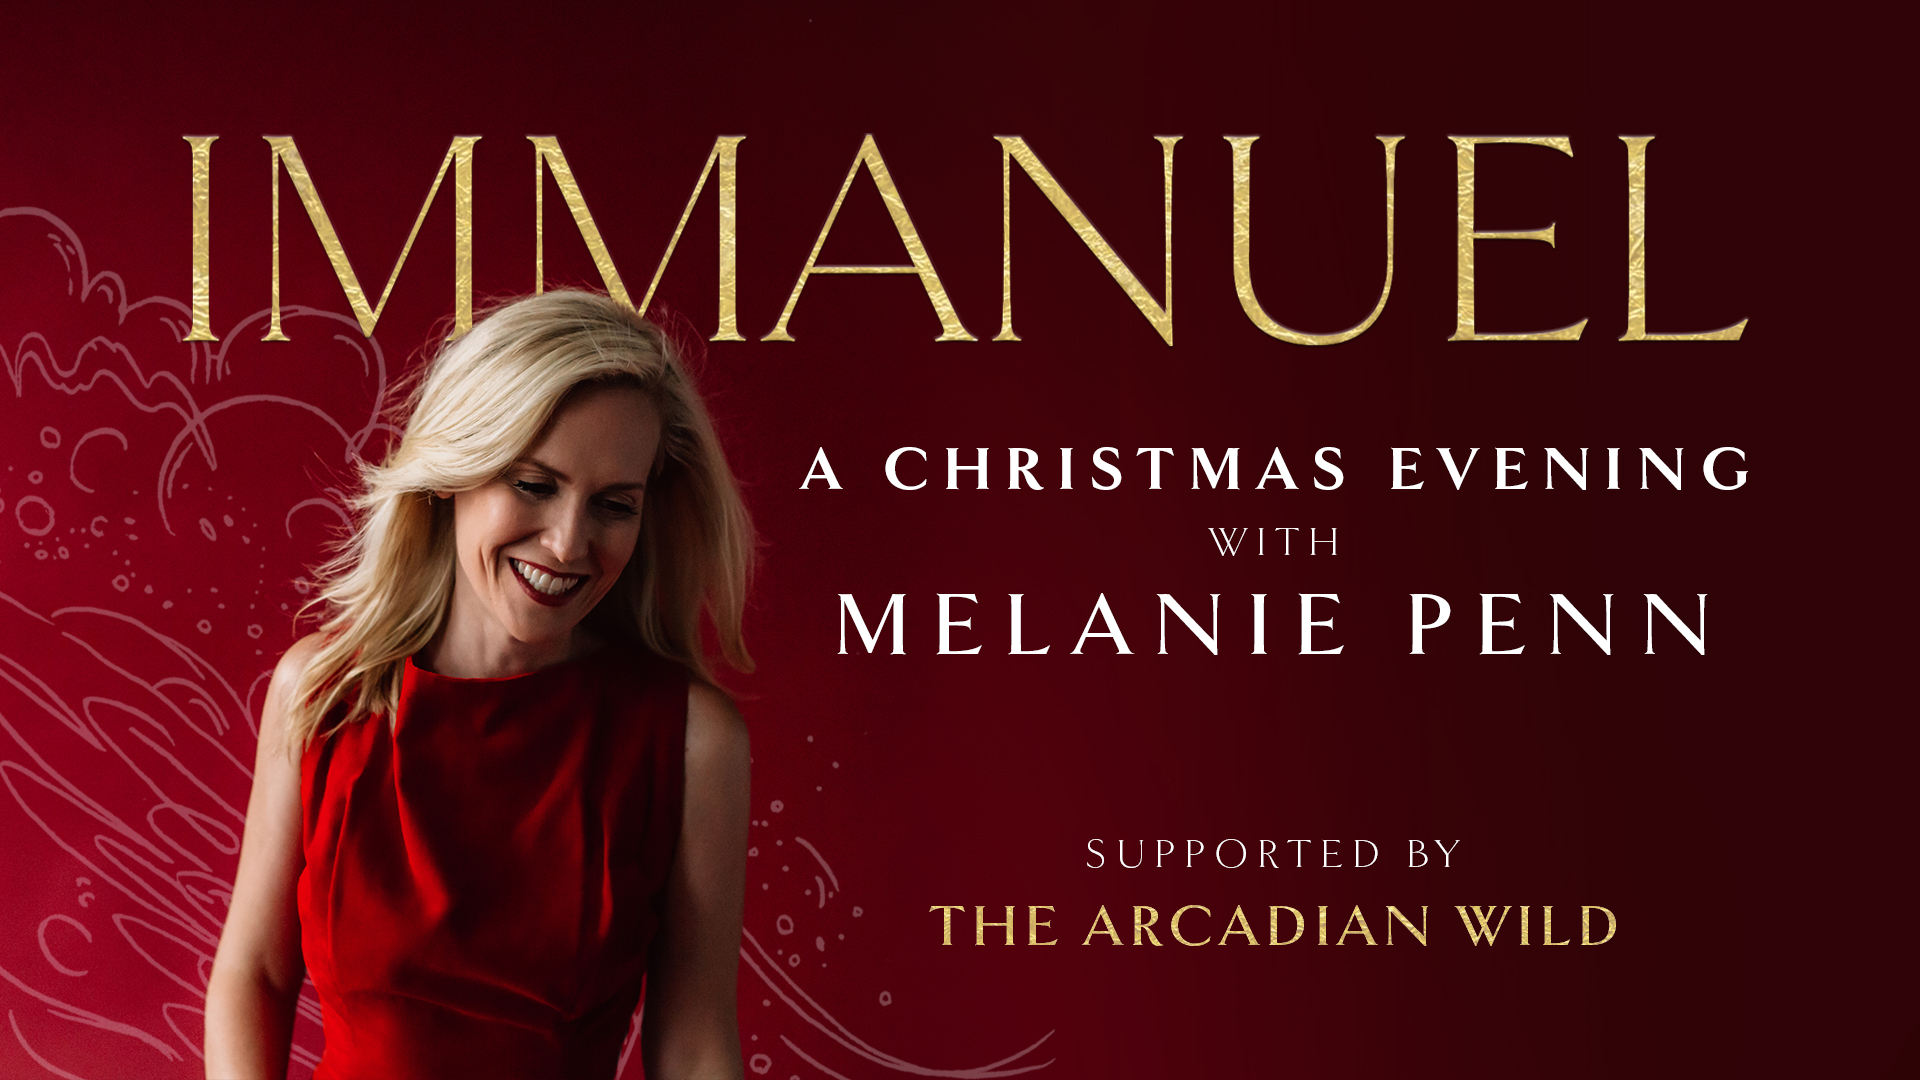 A Christmas Evening with Melanie Penn